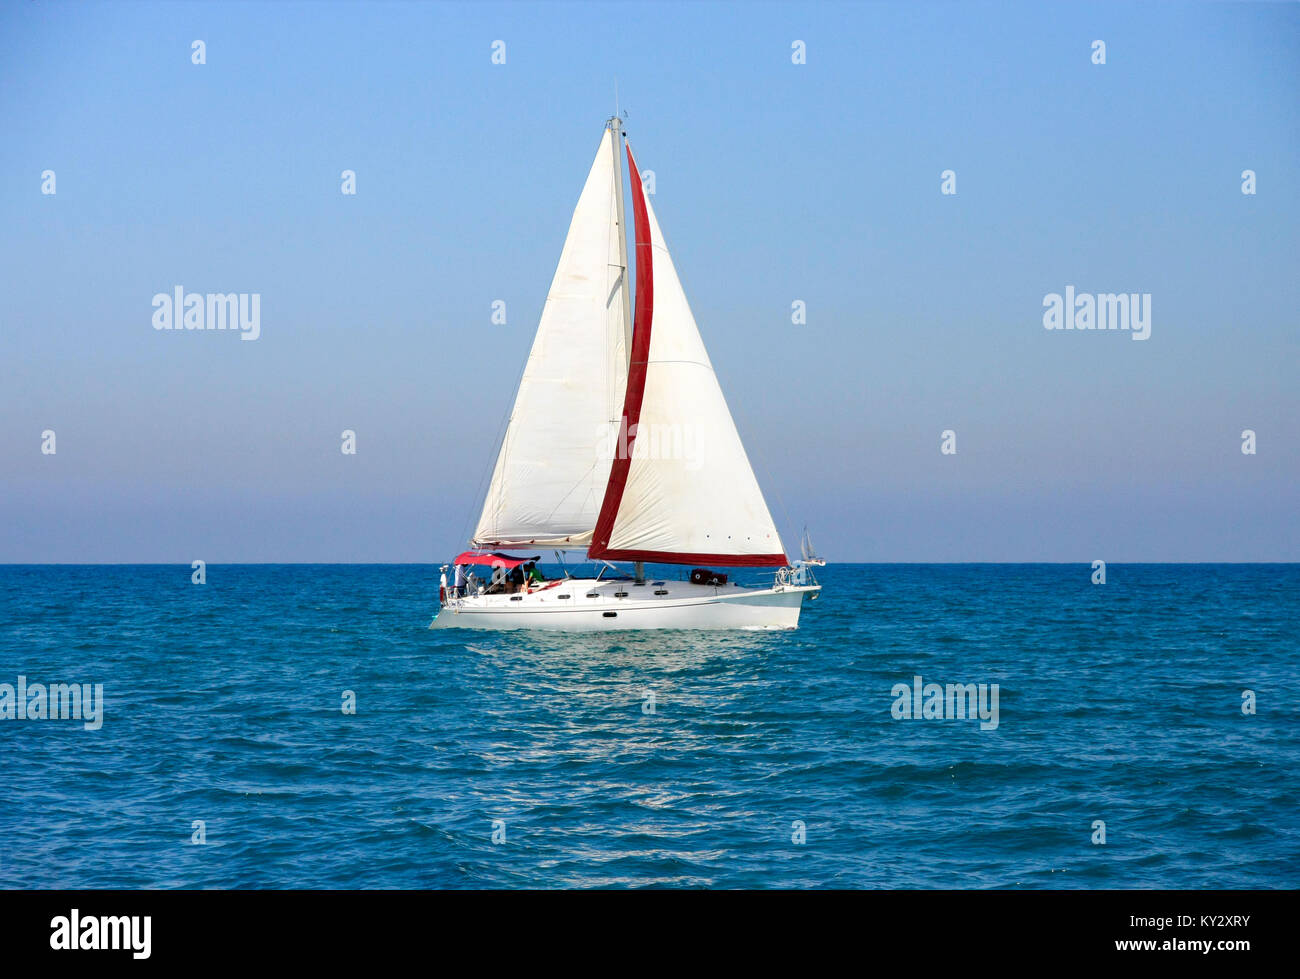 Israel, a yacht in the Mediterranean sea - Stock Image